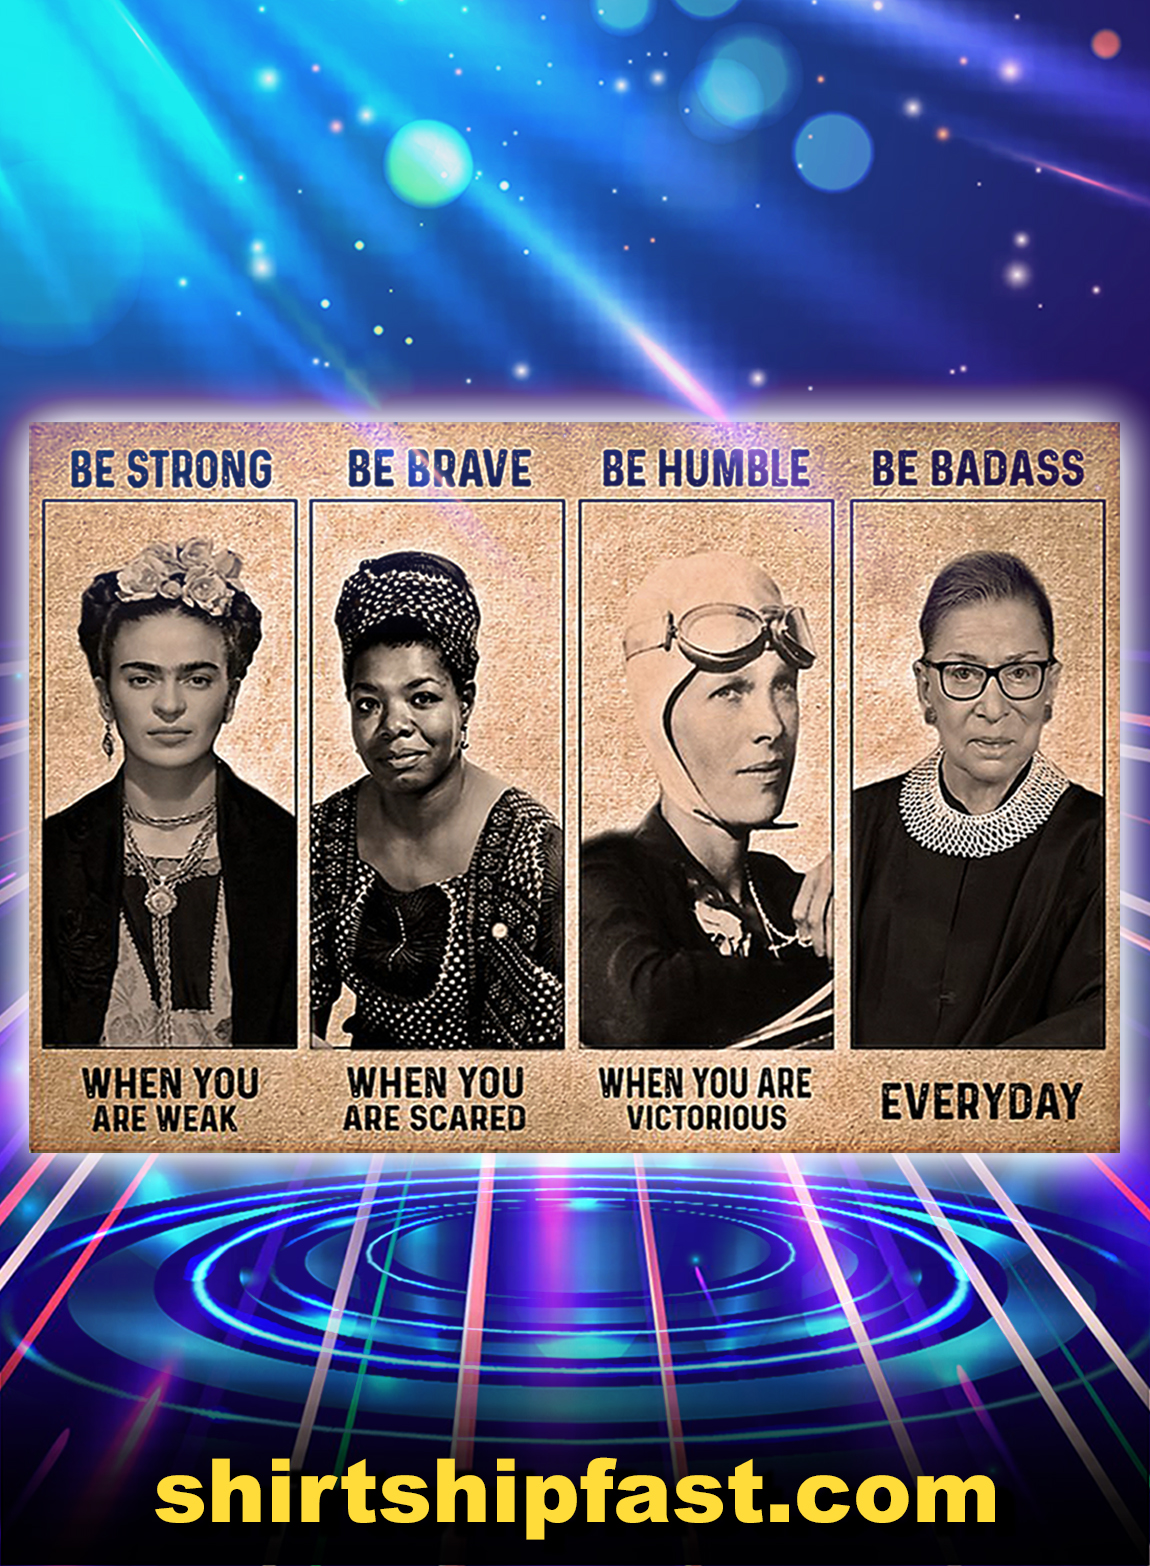 Frida kahlo and maya angelou feminist be strong be brave be humble be badass poster - A2